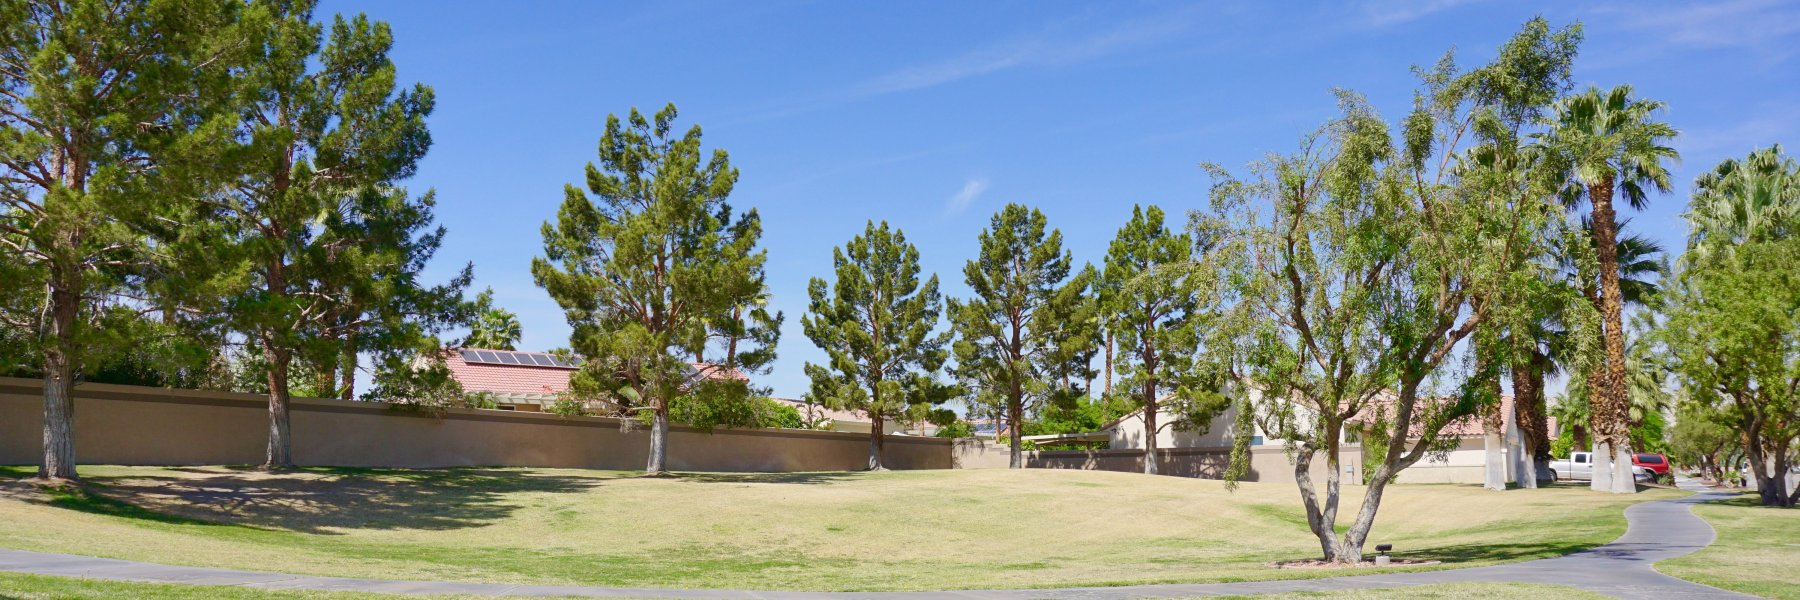 La Pasada is a community of homes in Cathedral City California